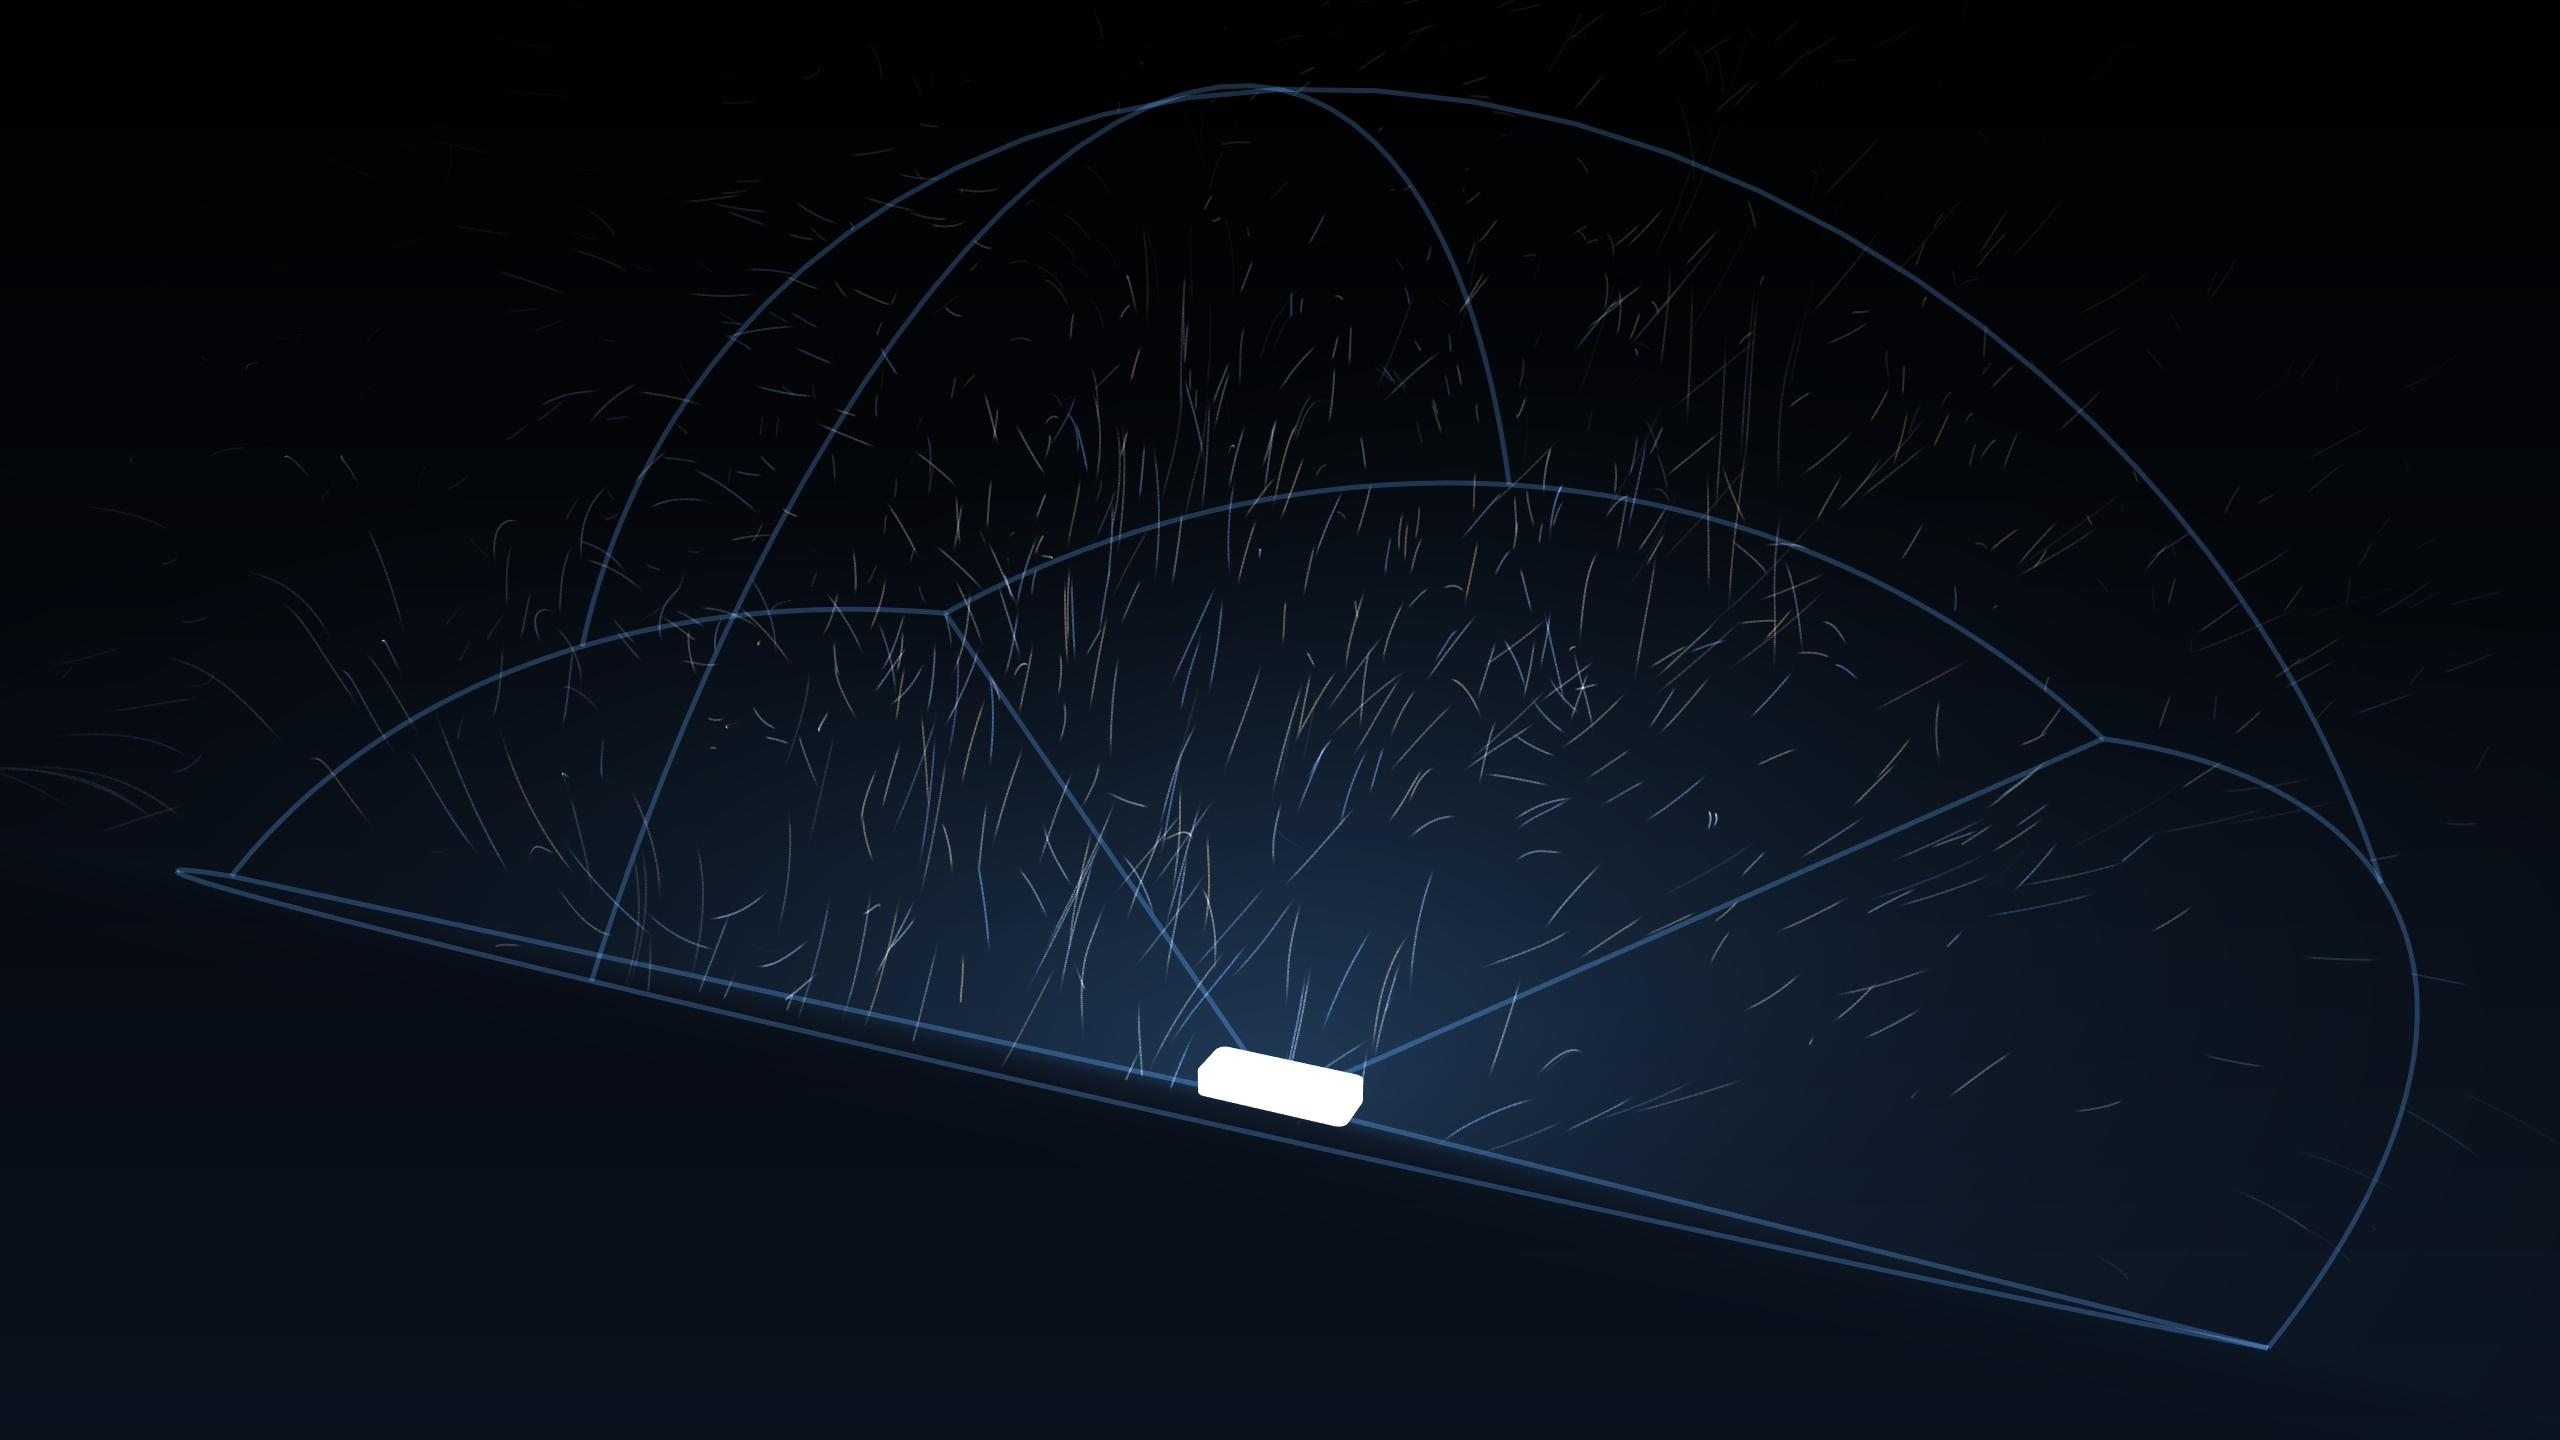 A graphical representation of the Leap Motion's field of view, taken from the orientation application.